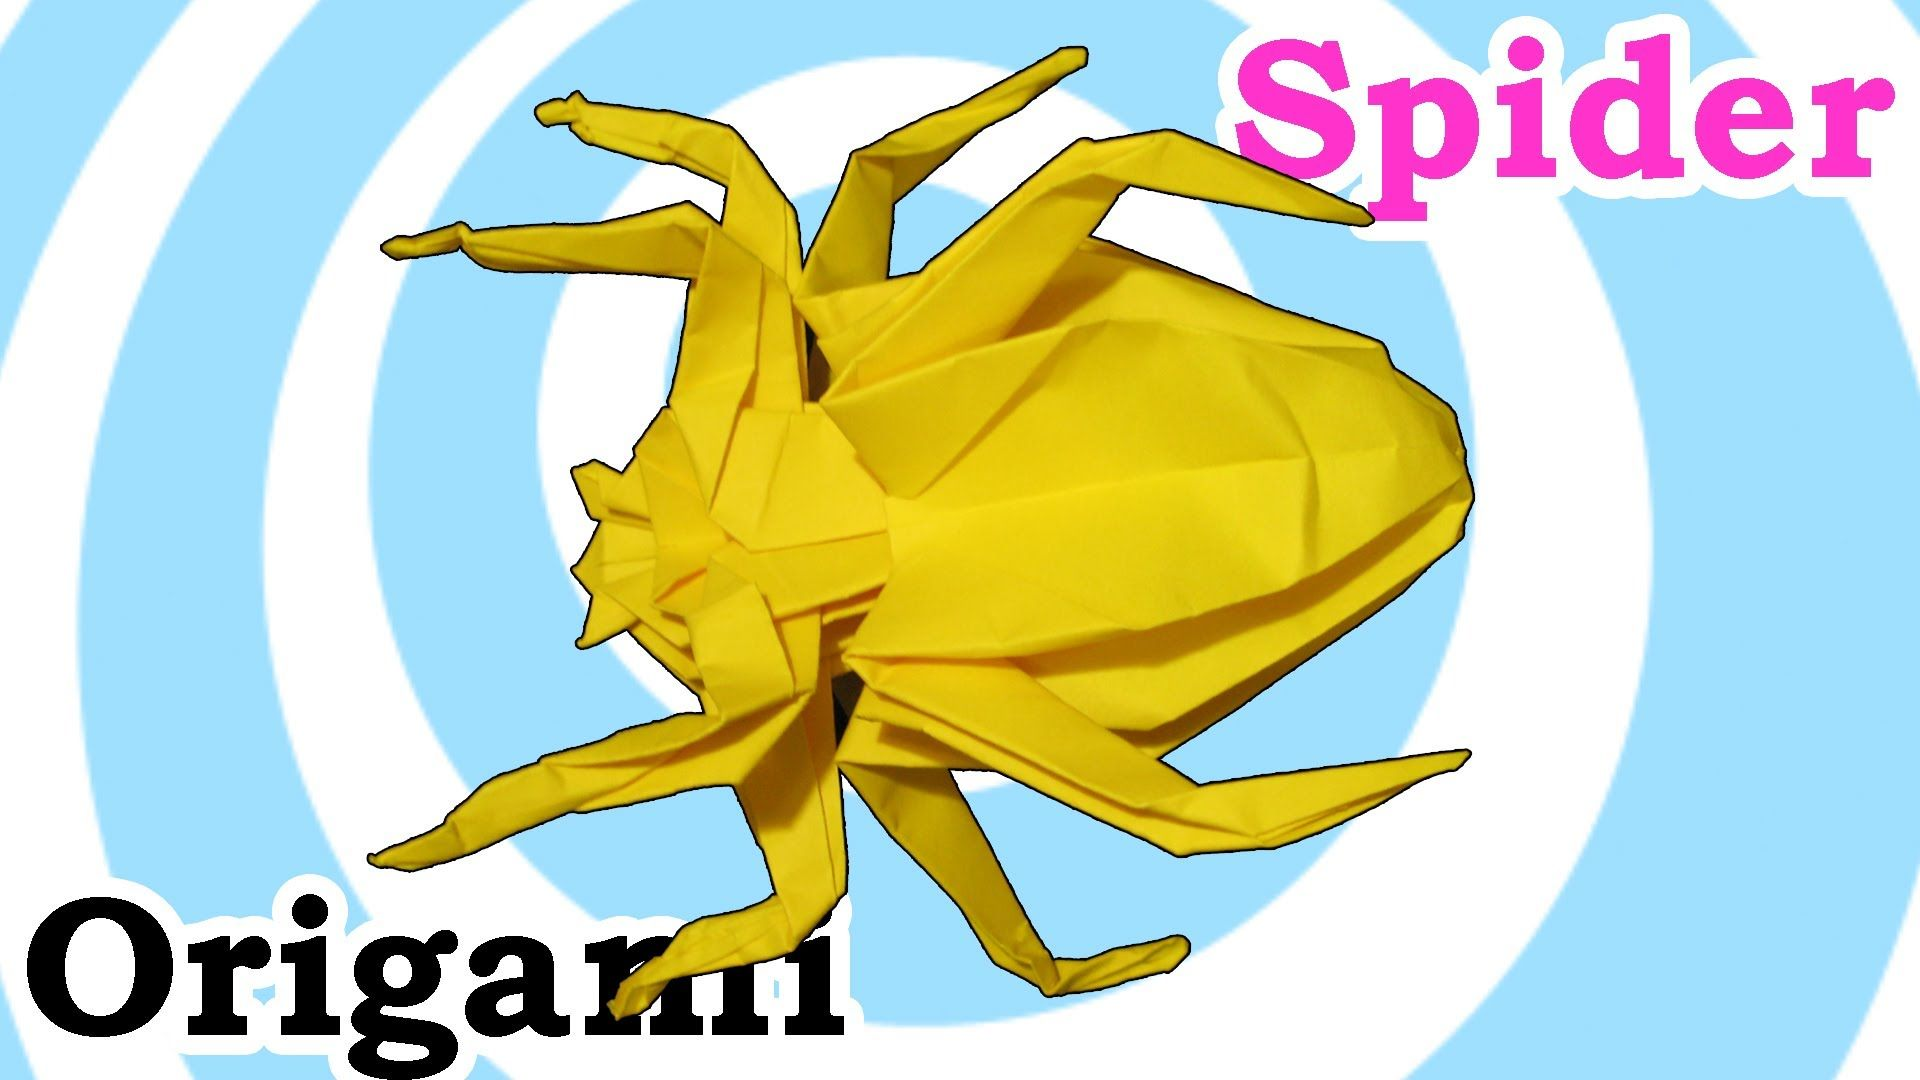 How To Make An Origami Spider Video Tutorial Origami Spider